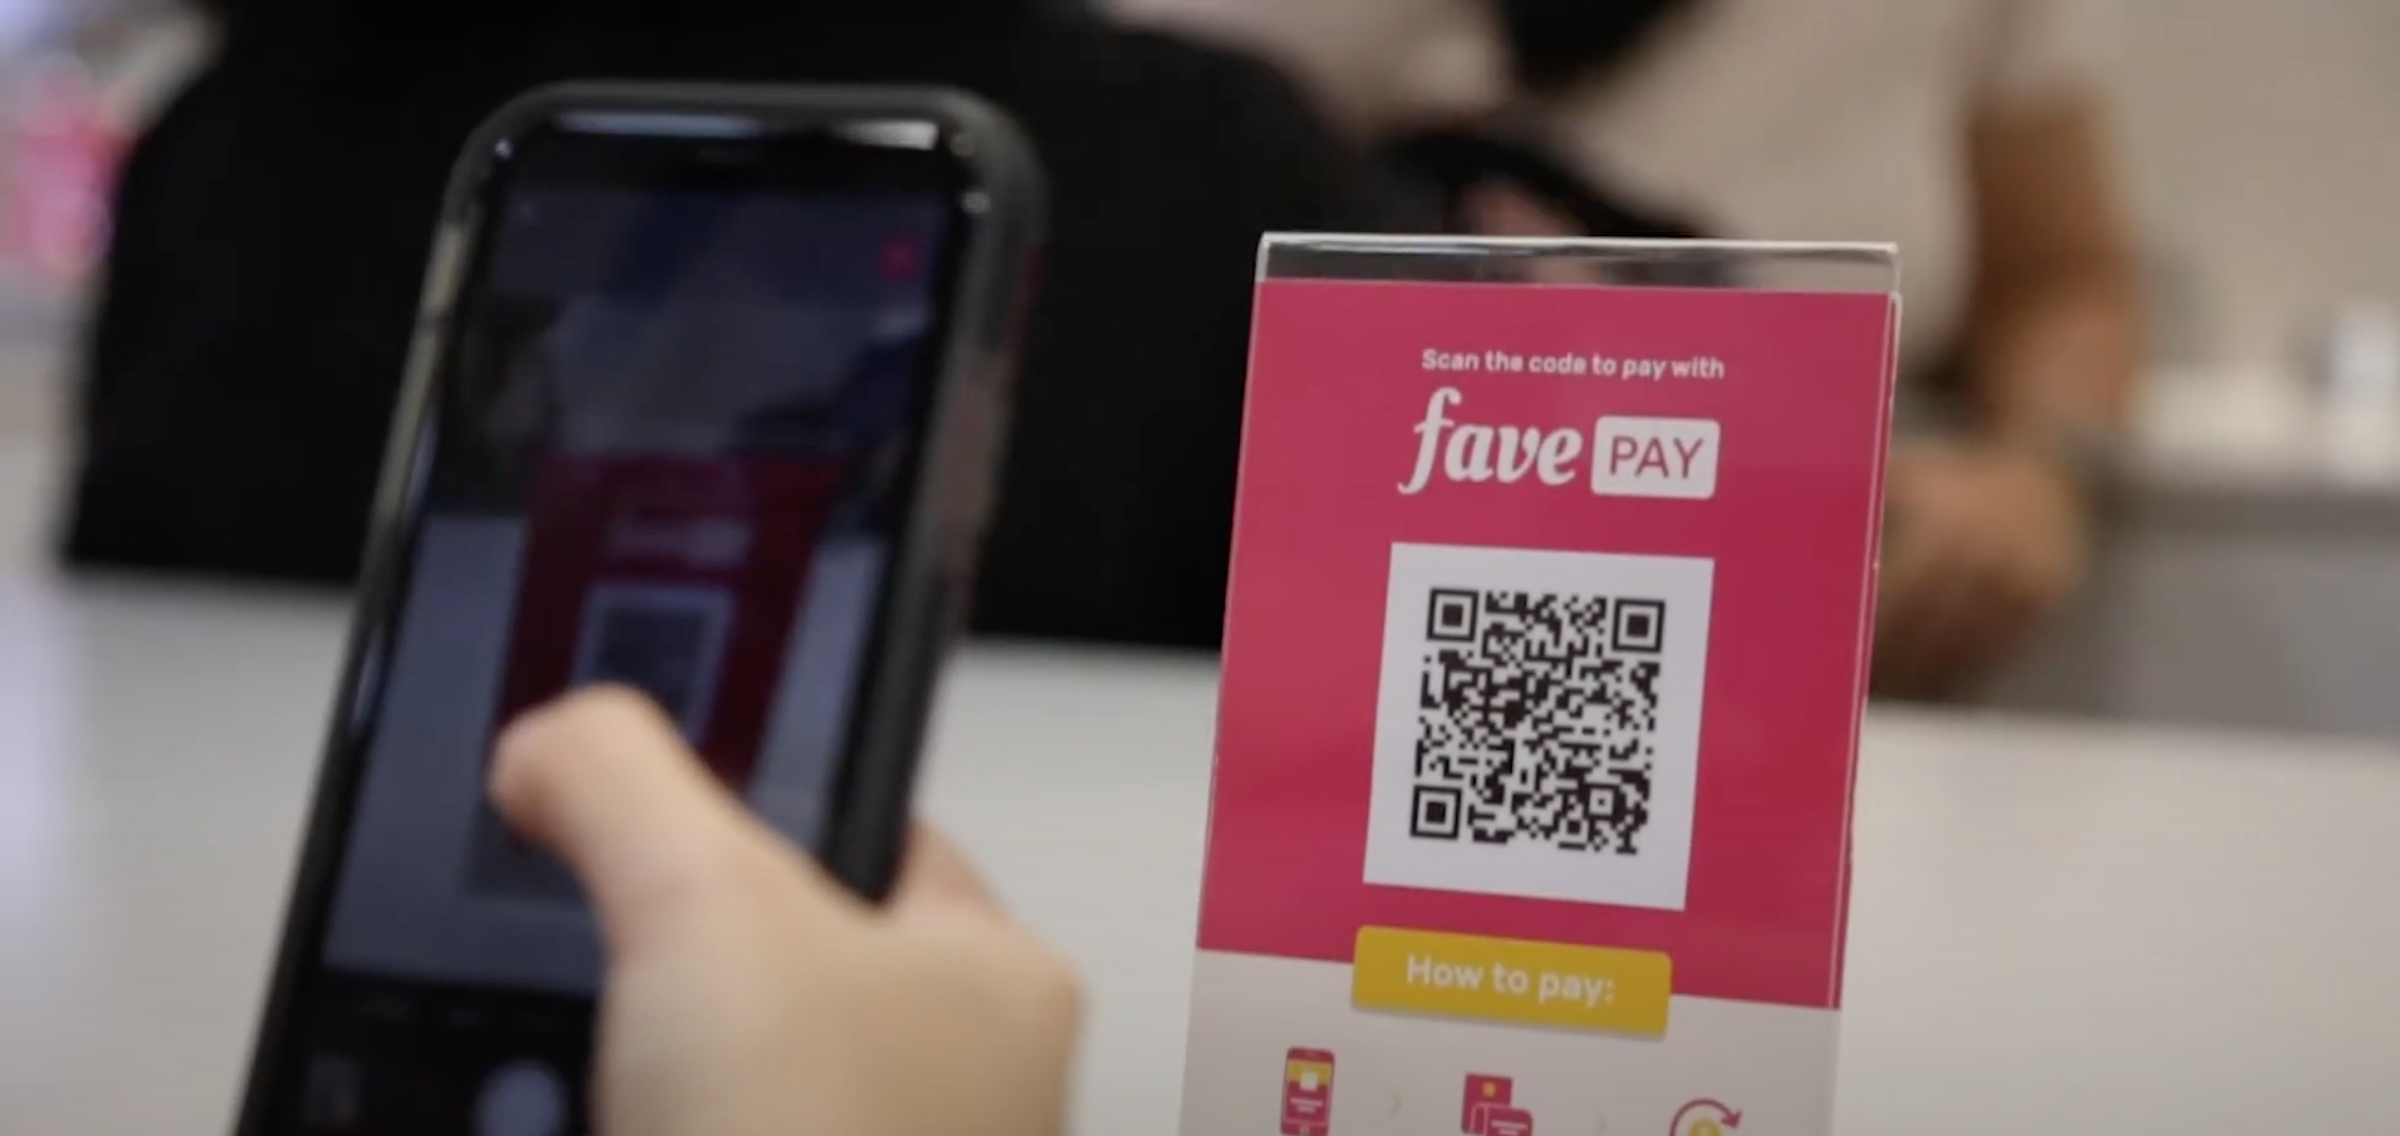 FavePay mobile payments